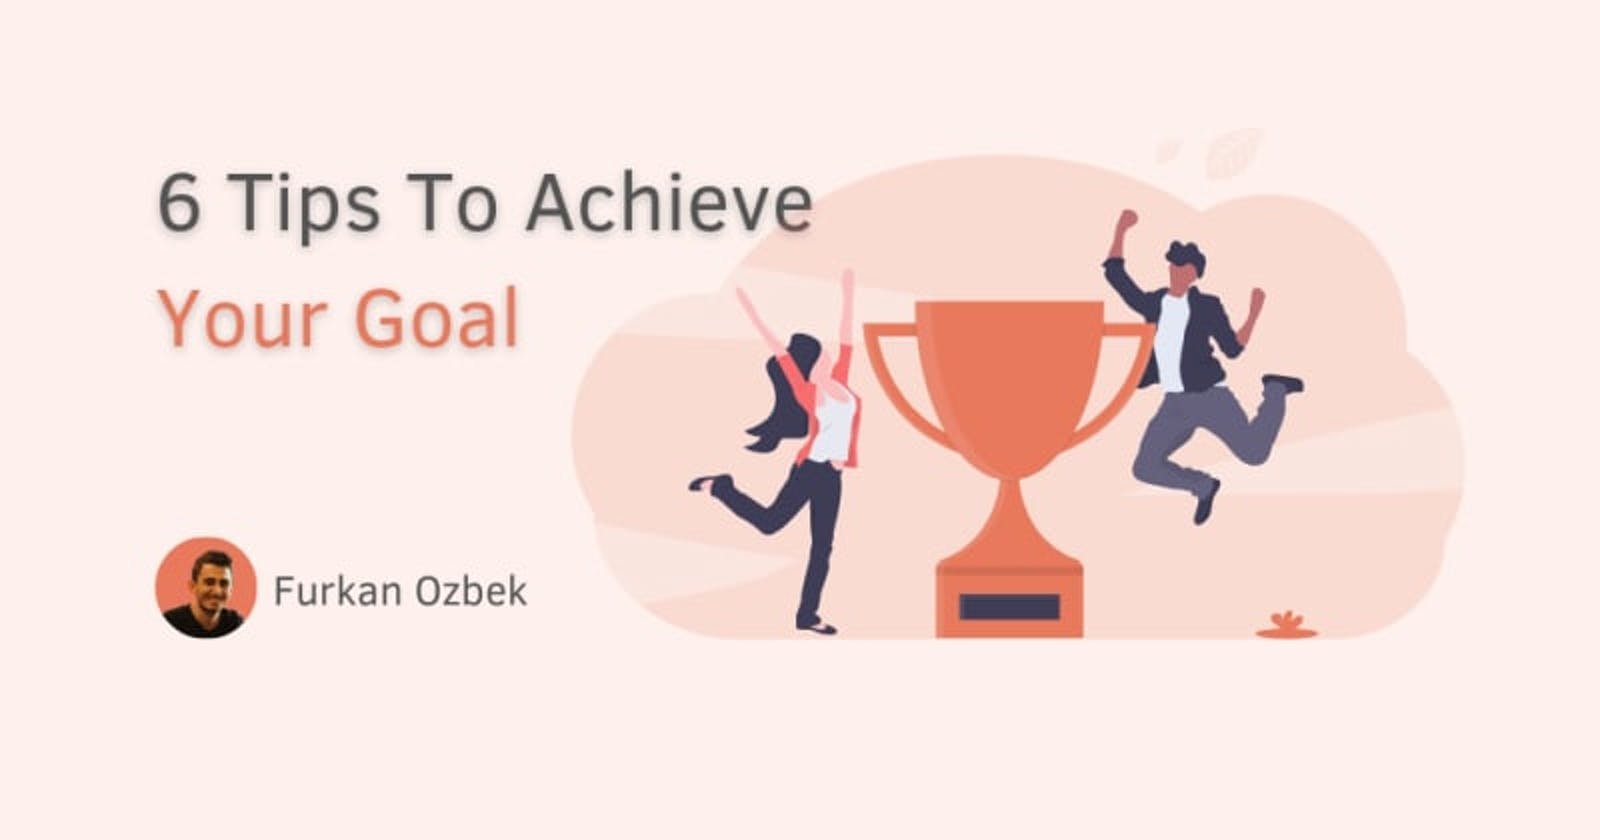 6 Tips To Achieve Your Goal